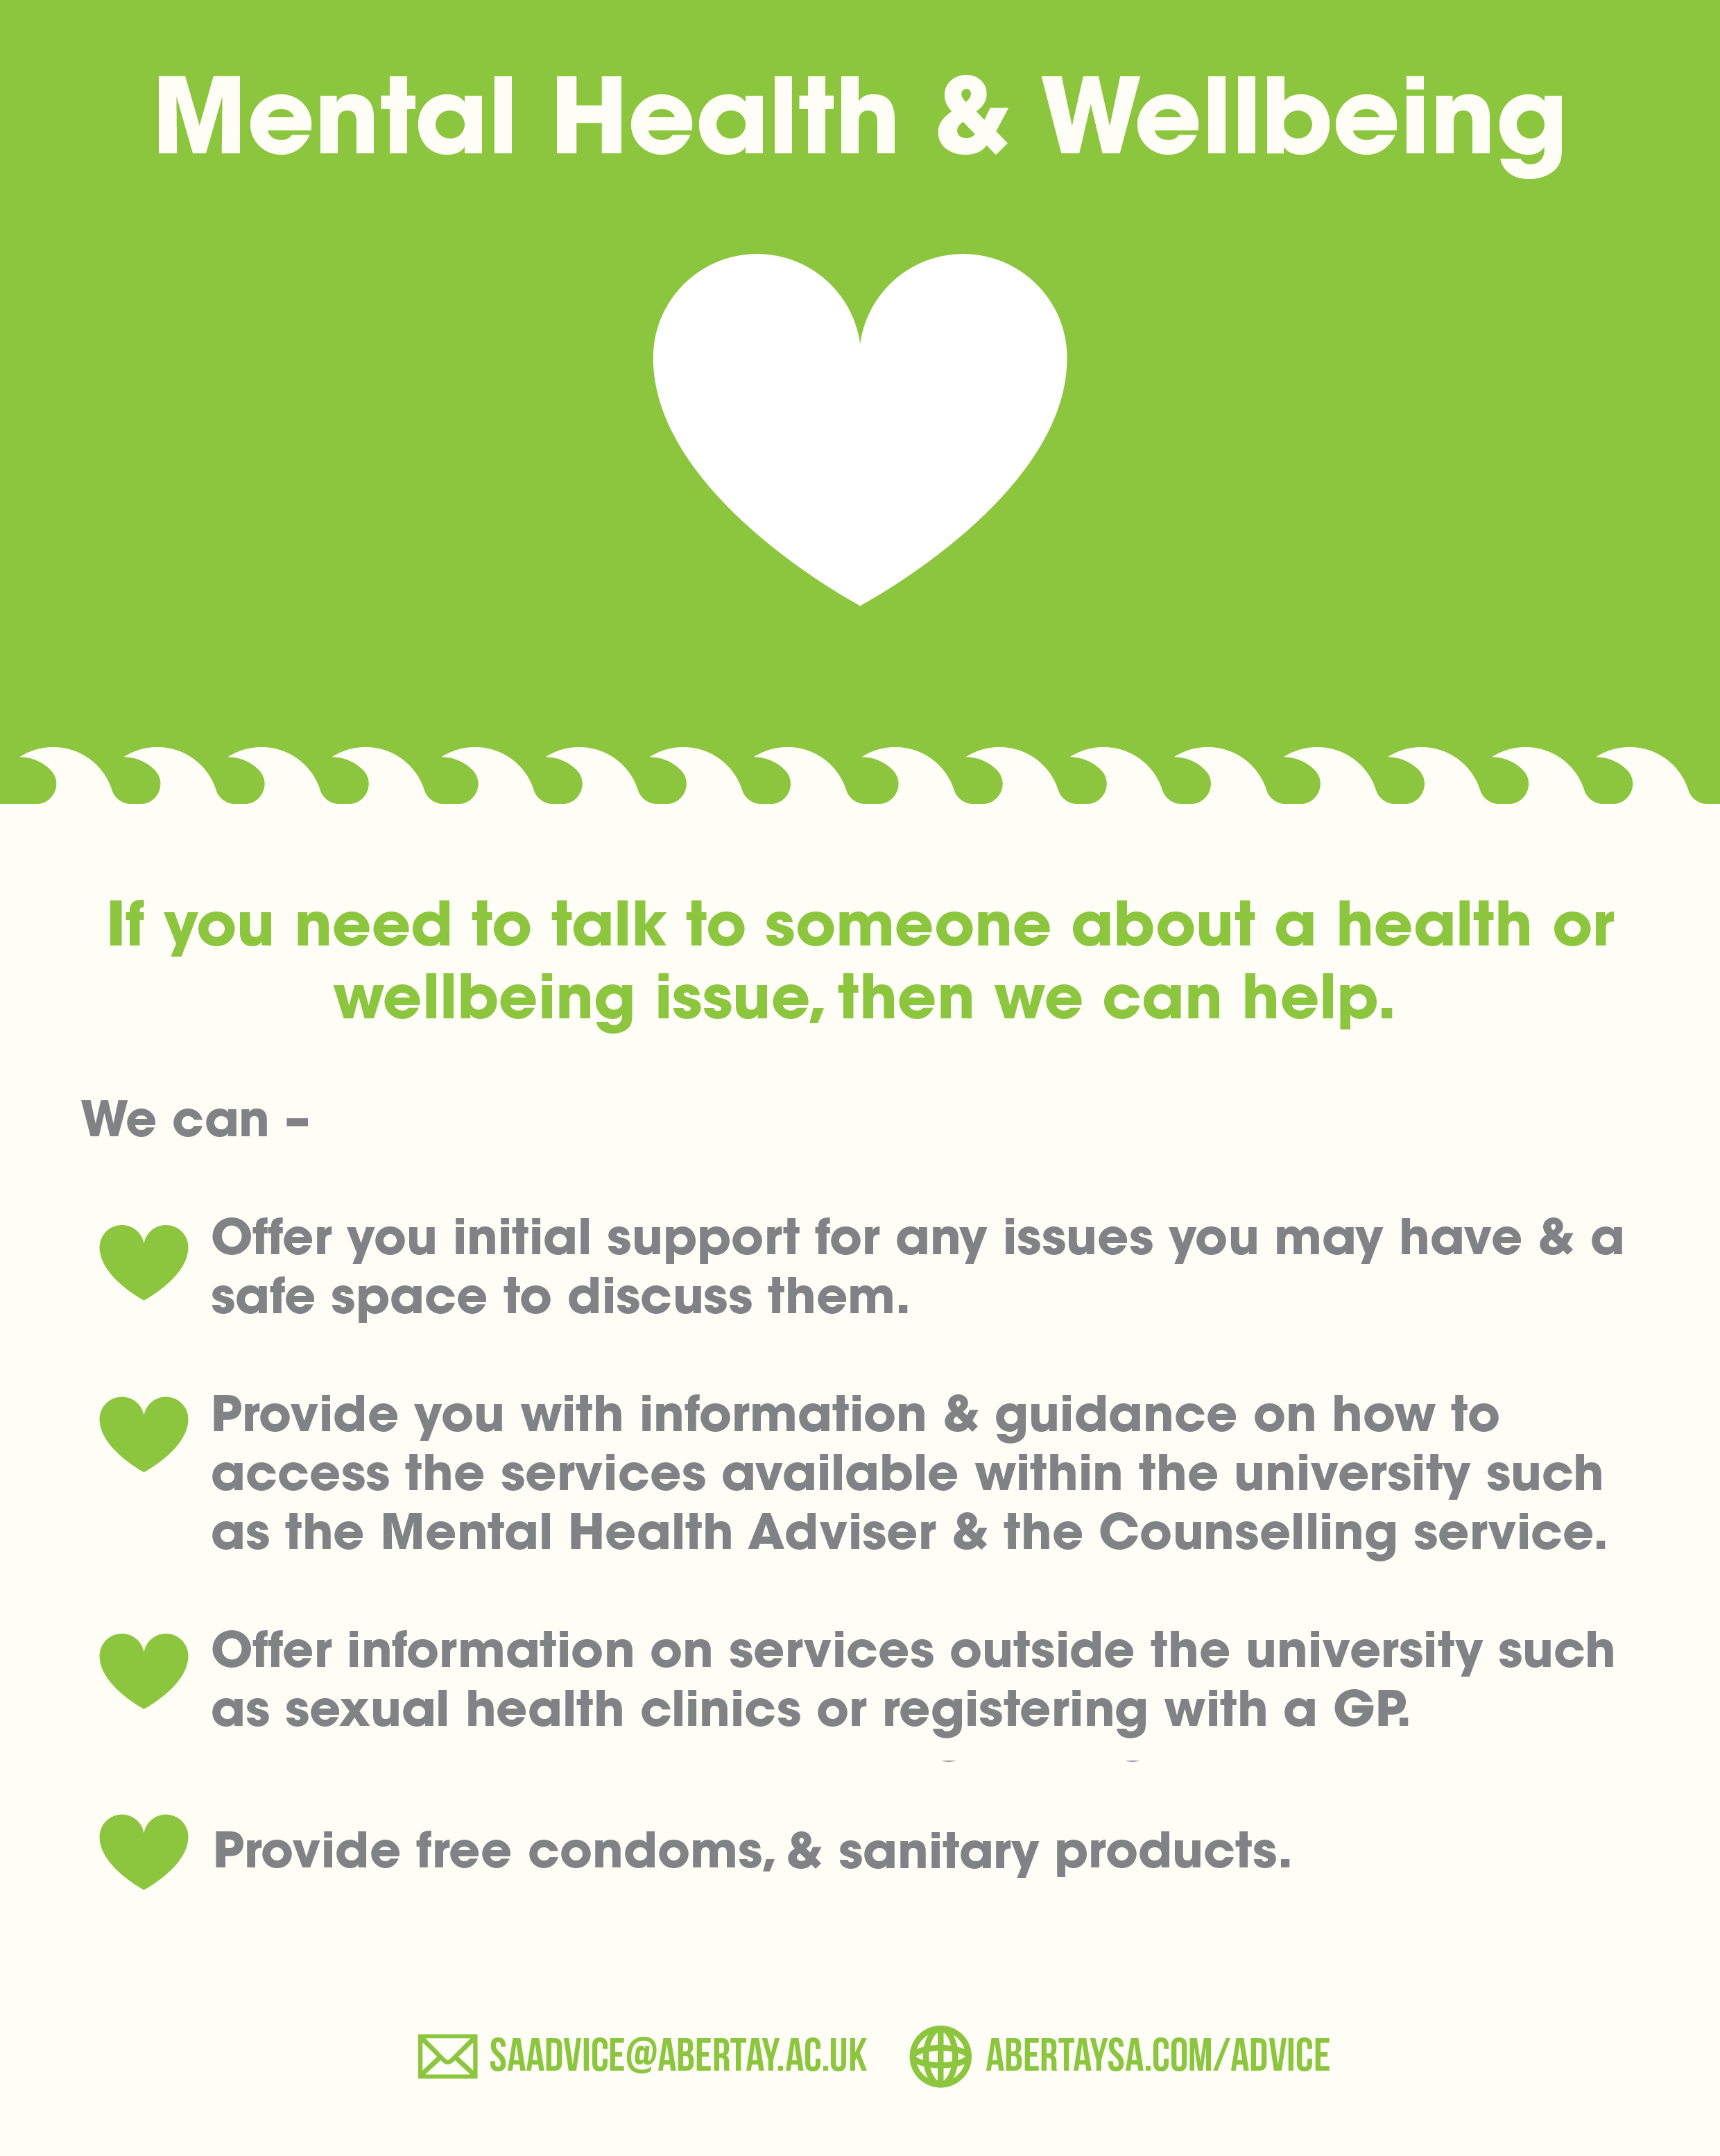 Mental Health & Wellbeing. If you need to talk to someone about a health or wellbeing issue, then we can help. We can; offer you initial support for any issues you may have & a safe space to discuss them; provide you with information & guidance on how to access the services available within the university such as the Mental Health Adviser & the Counselling service; Offer information on services outside the university such as sexual health clinics or registering with a GP. Provide free condoms, pregancy test kits & sanitary products. Contact us via email at saadvice@abertay.ac.uk, or pop into the office (across from the main lecture theatre for a chat.